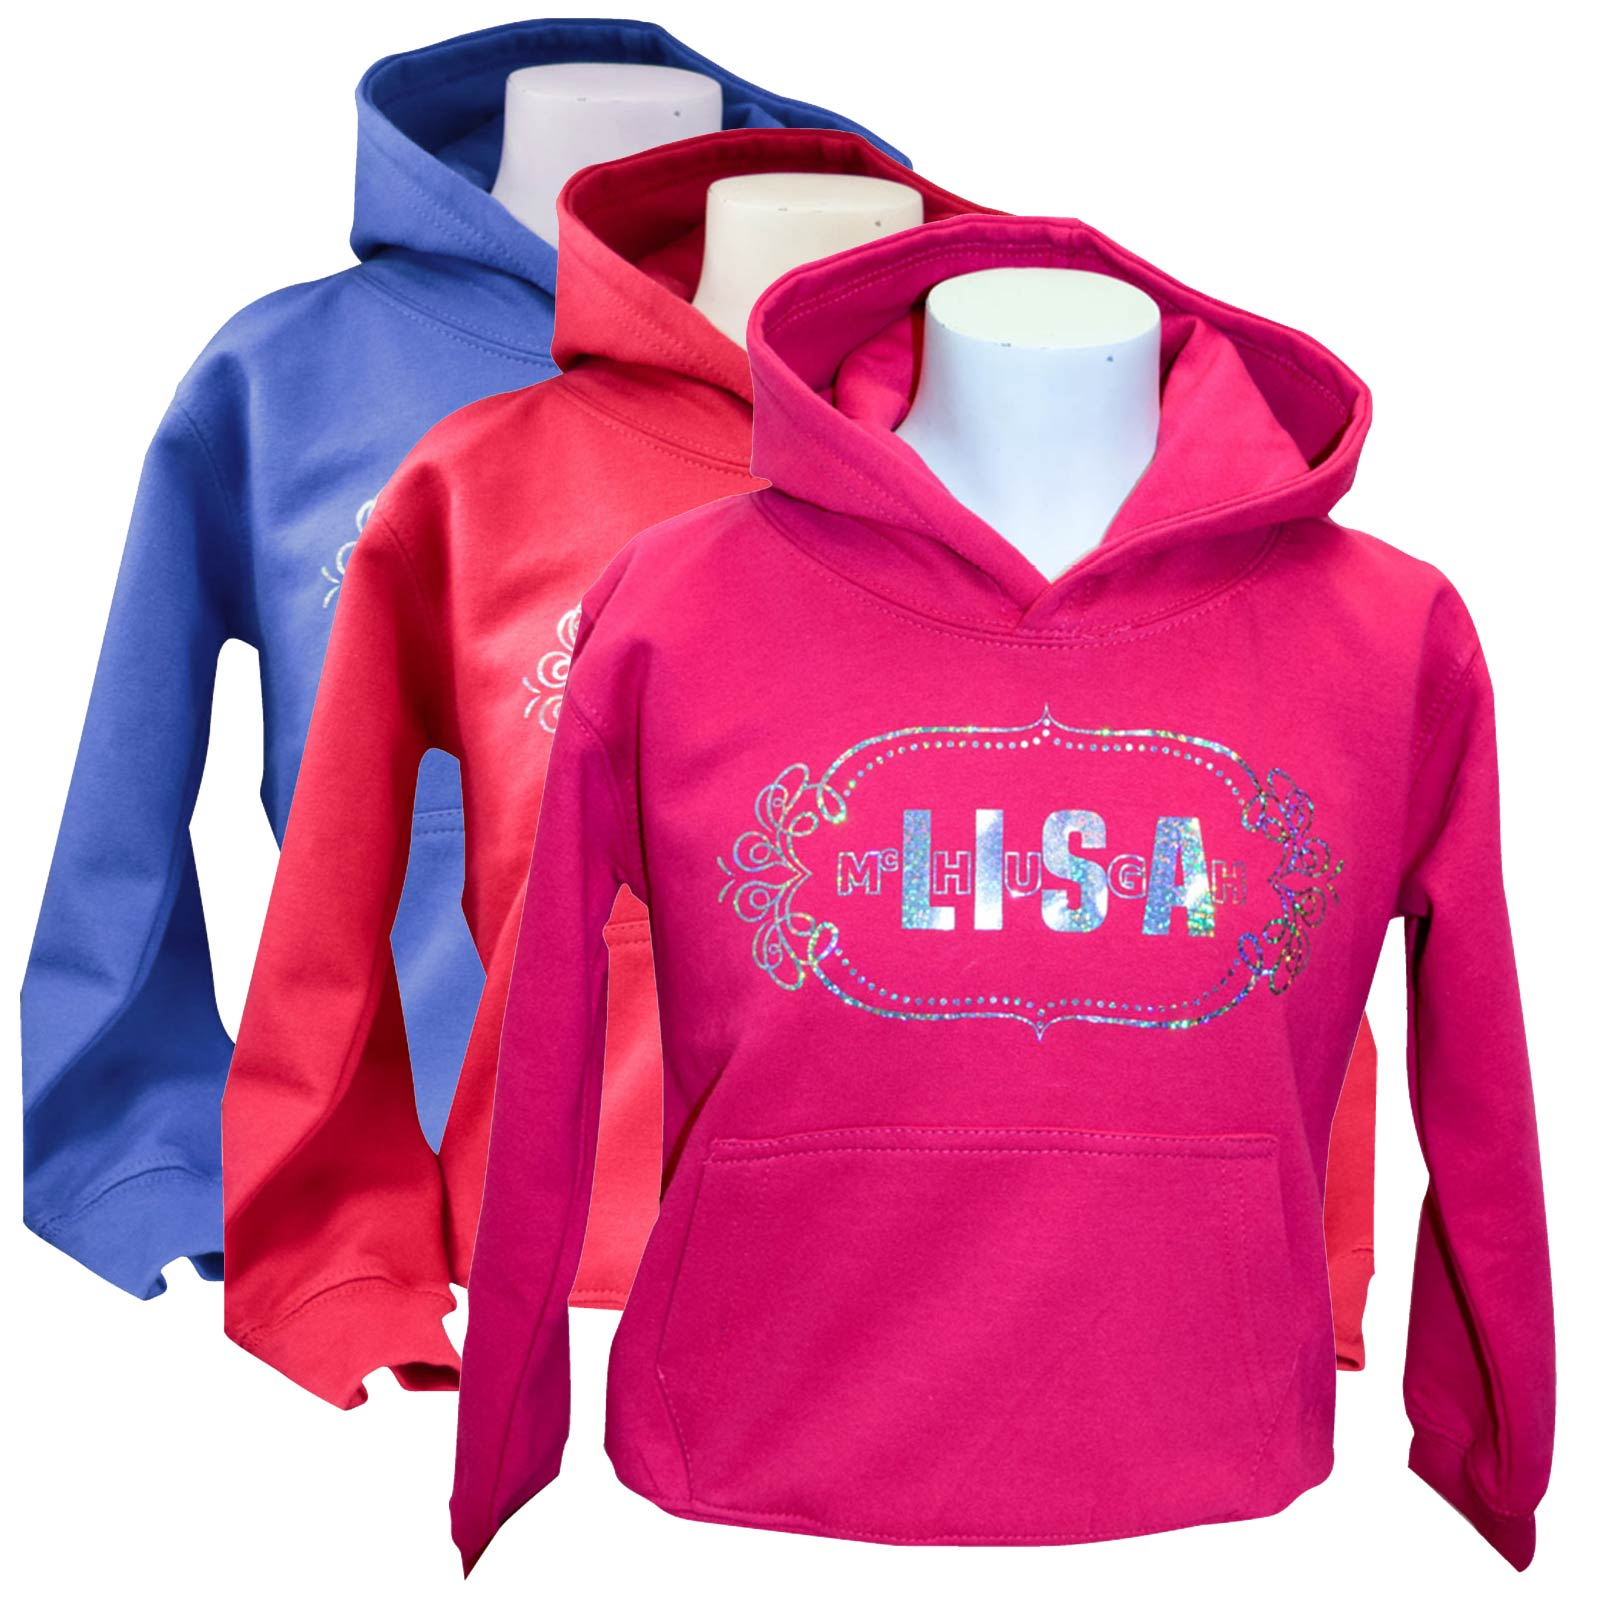 lisa mchugh kid hoodies all